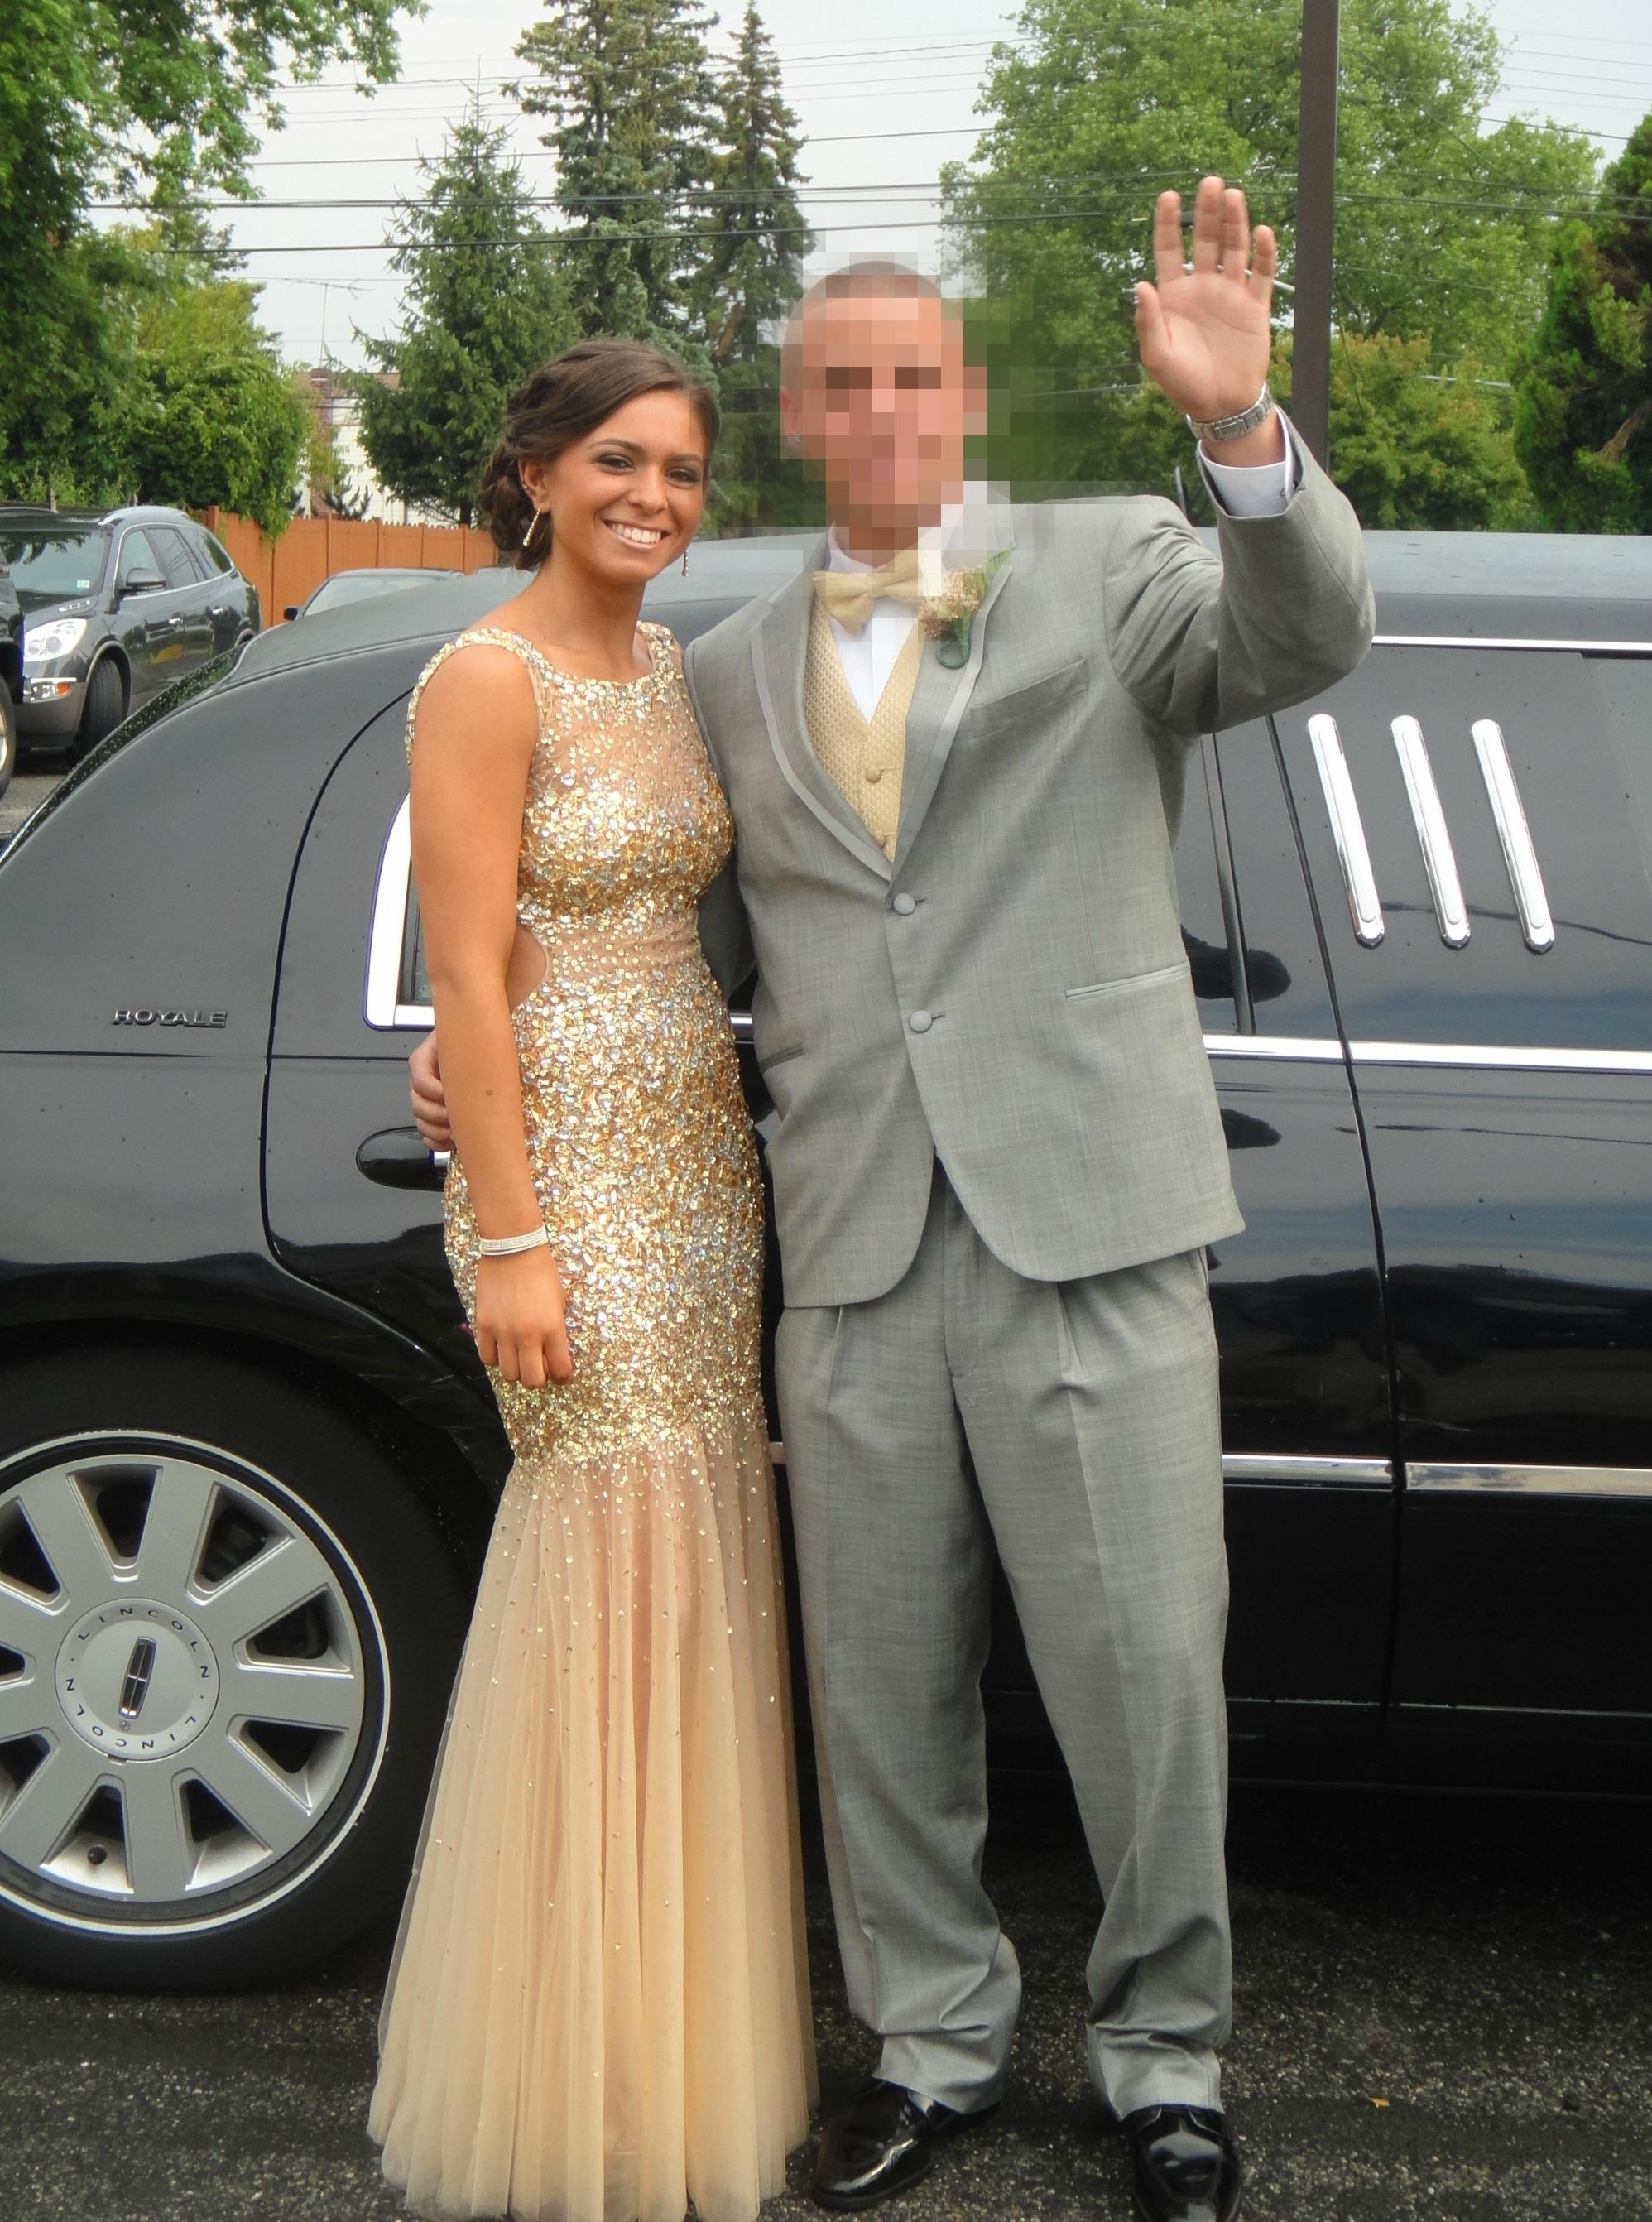 Long island medium daughters prom dress pictures